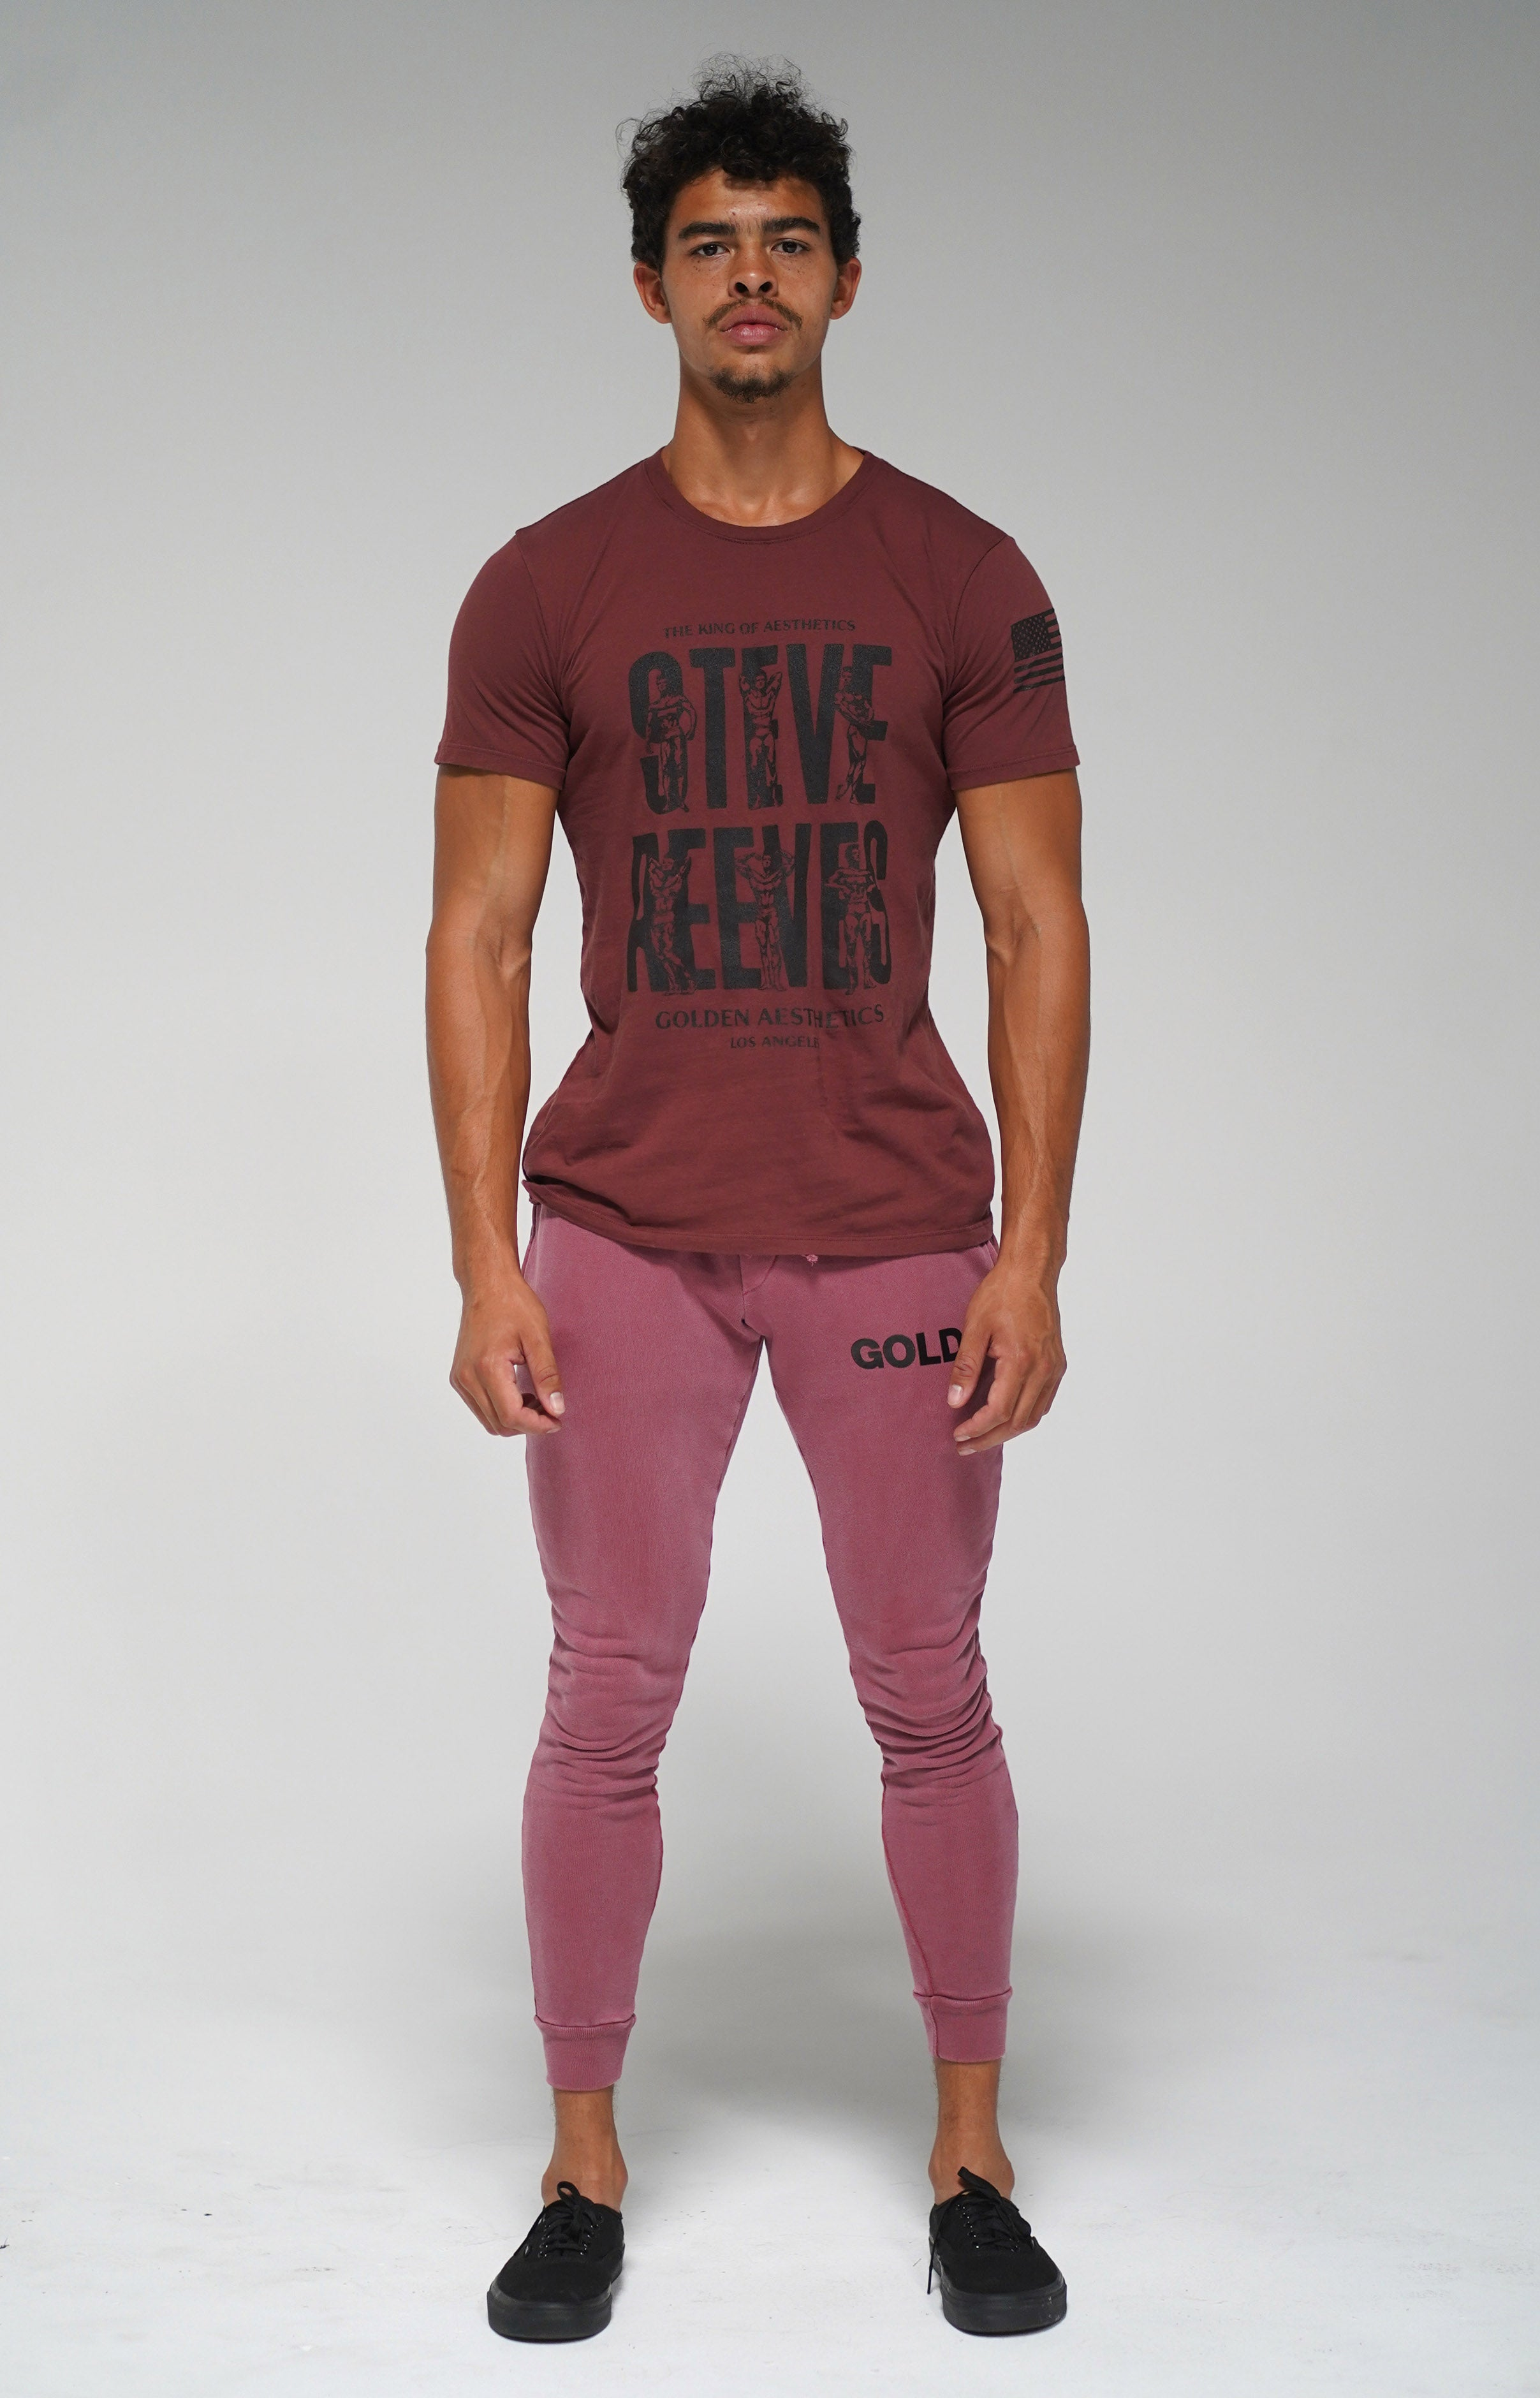 Burgundy Steve Reeves T-Shirt